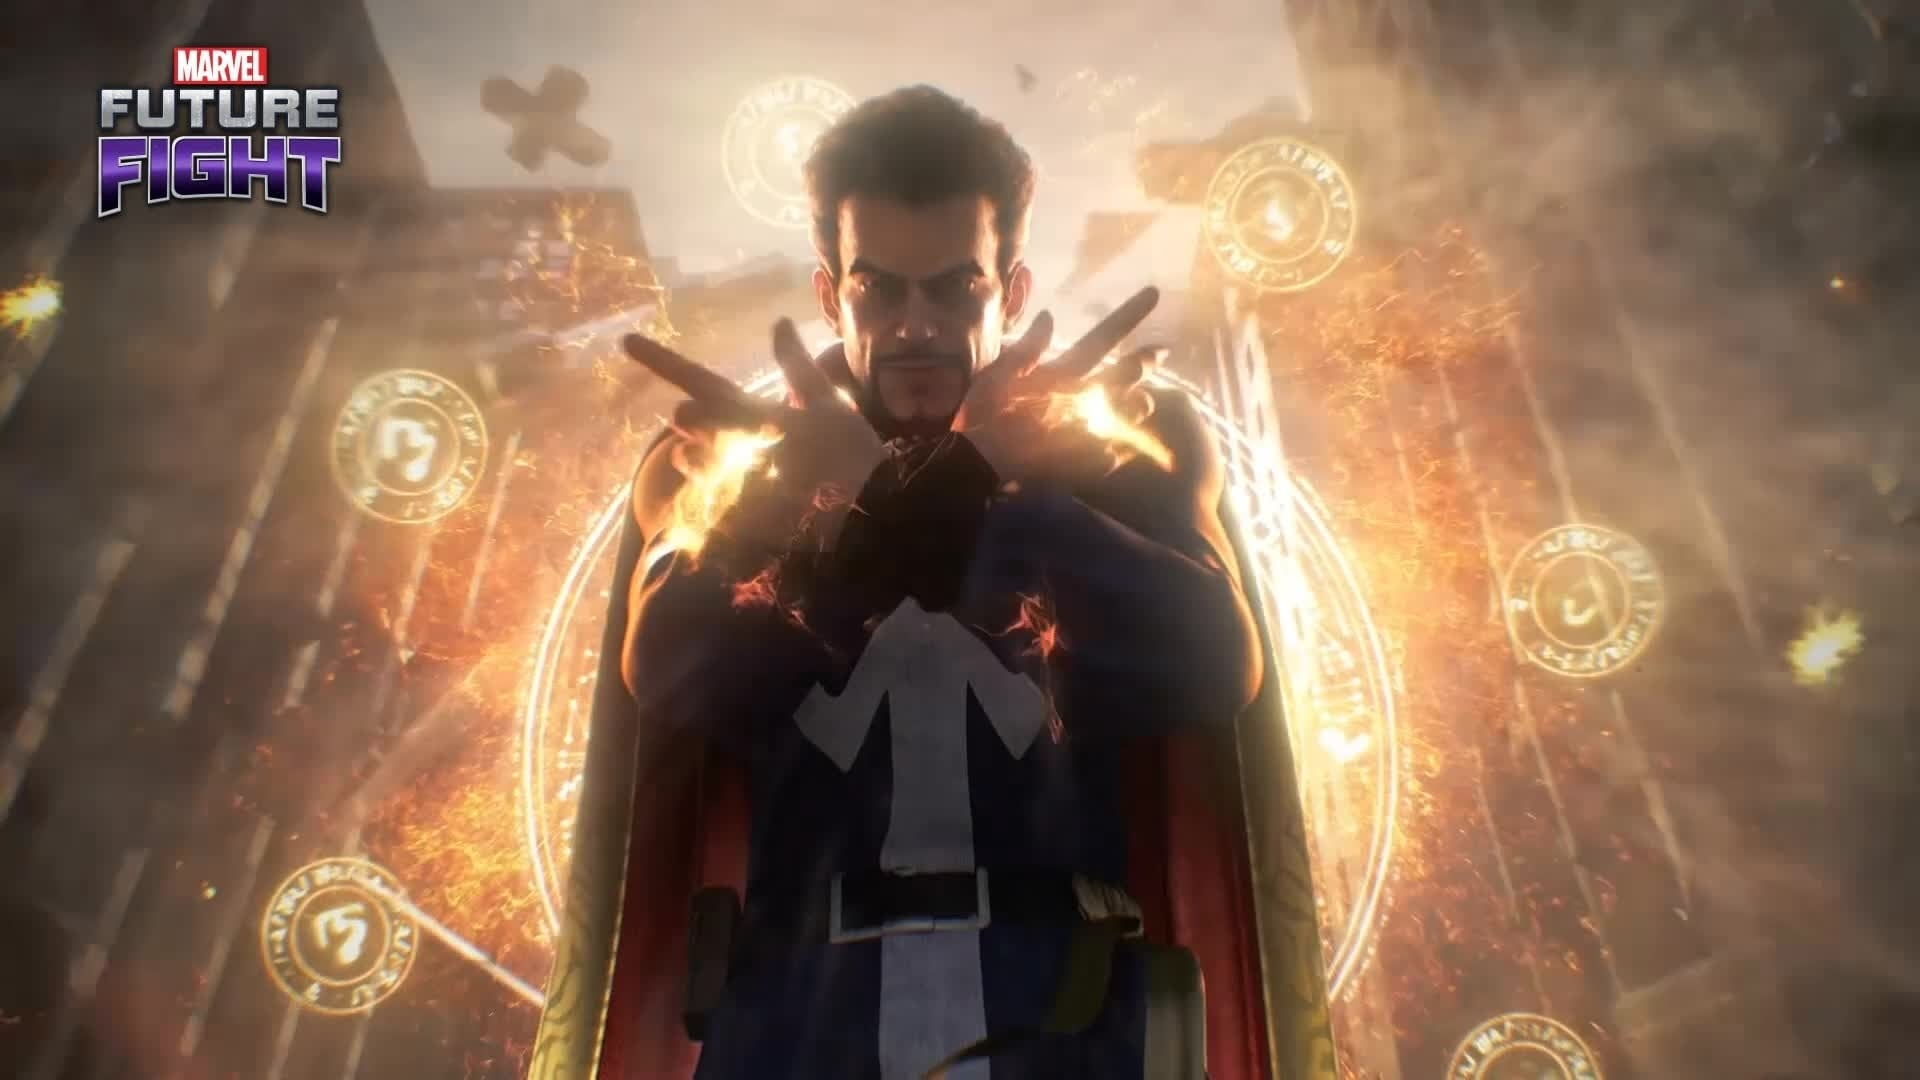 MARVEL Future Fight - Doctor Strange App Trailer